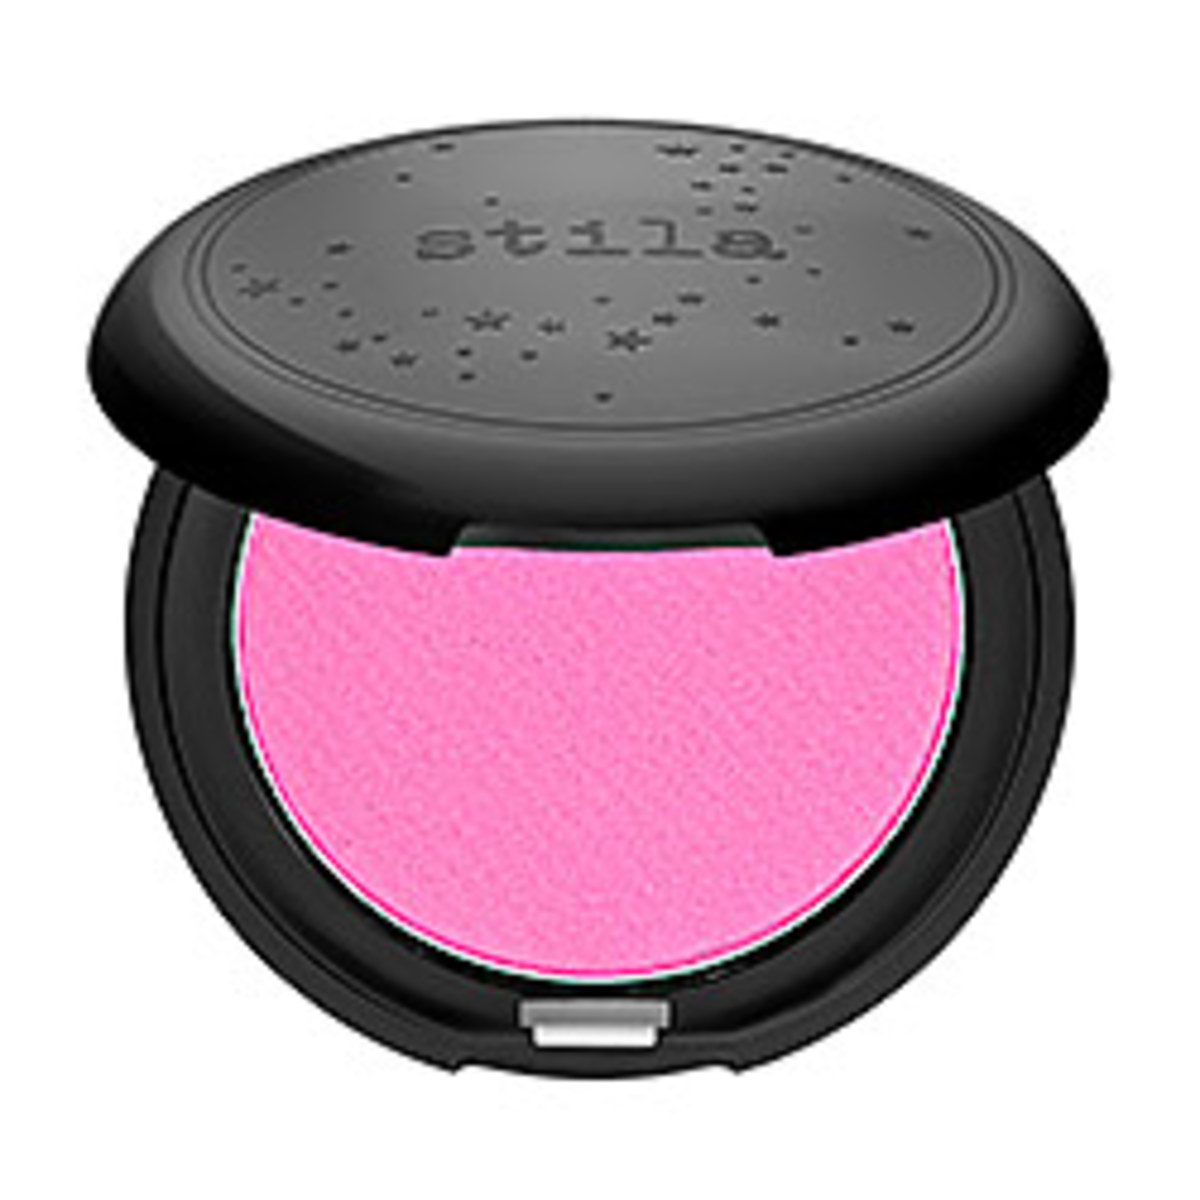 Stila Blush in Sheer Pink